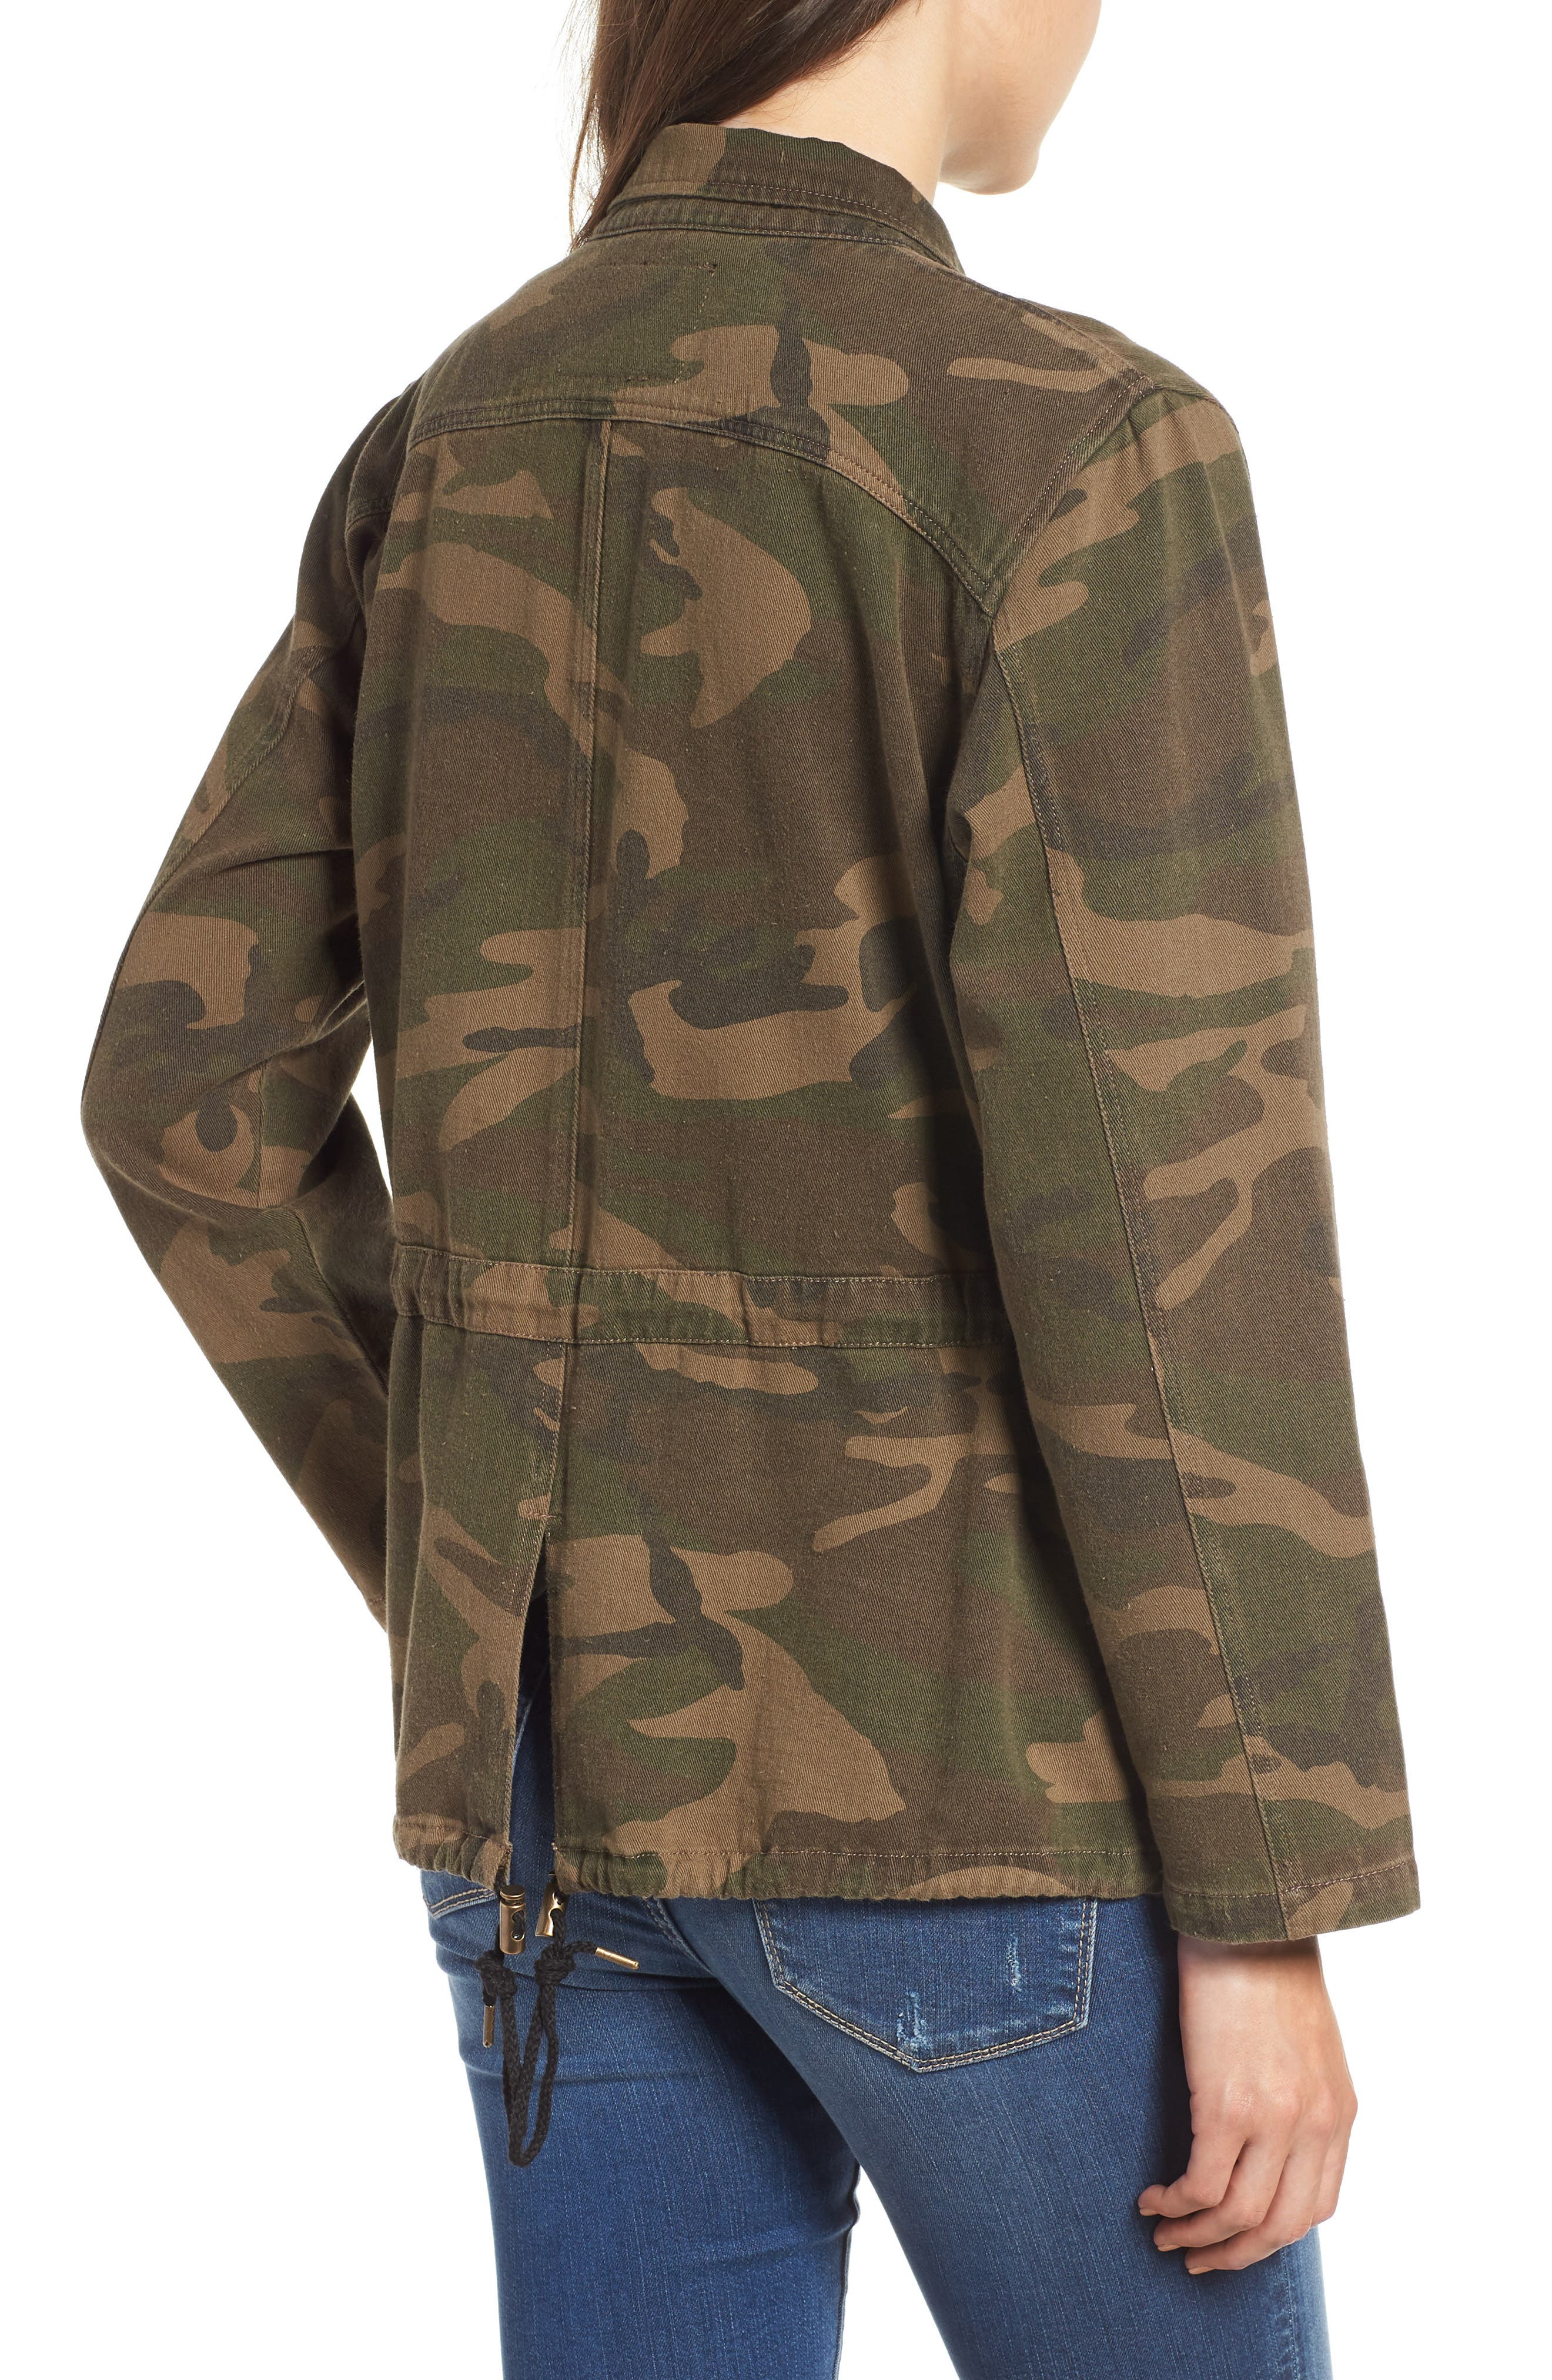 Camo Print Army Jacket,                             Alternate thumbnail 2, color,                             300